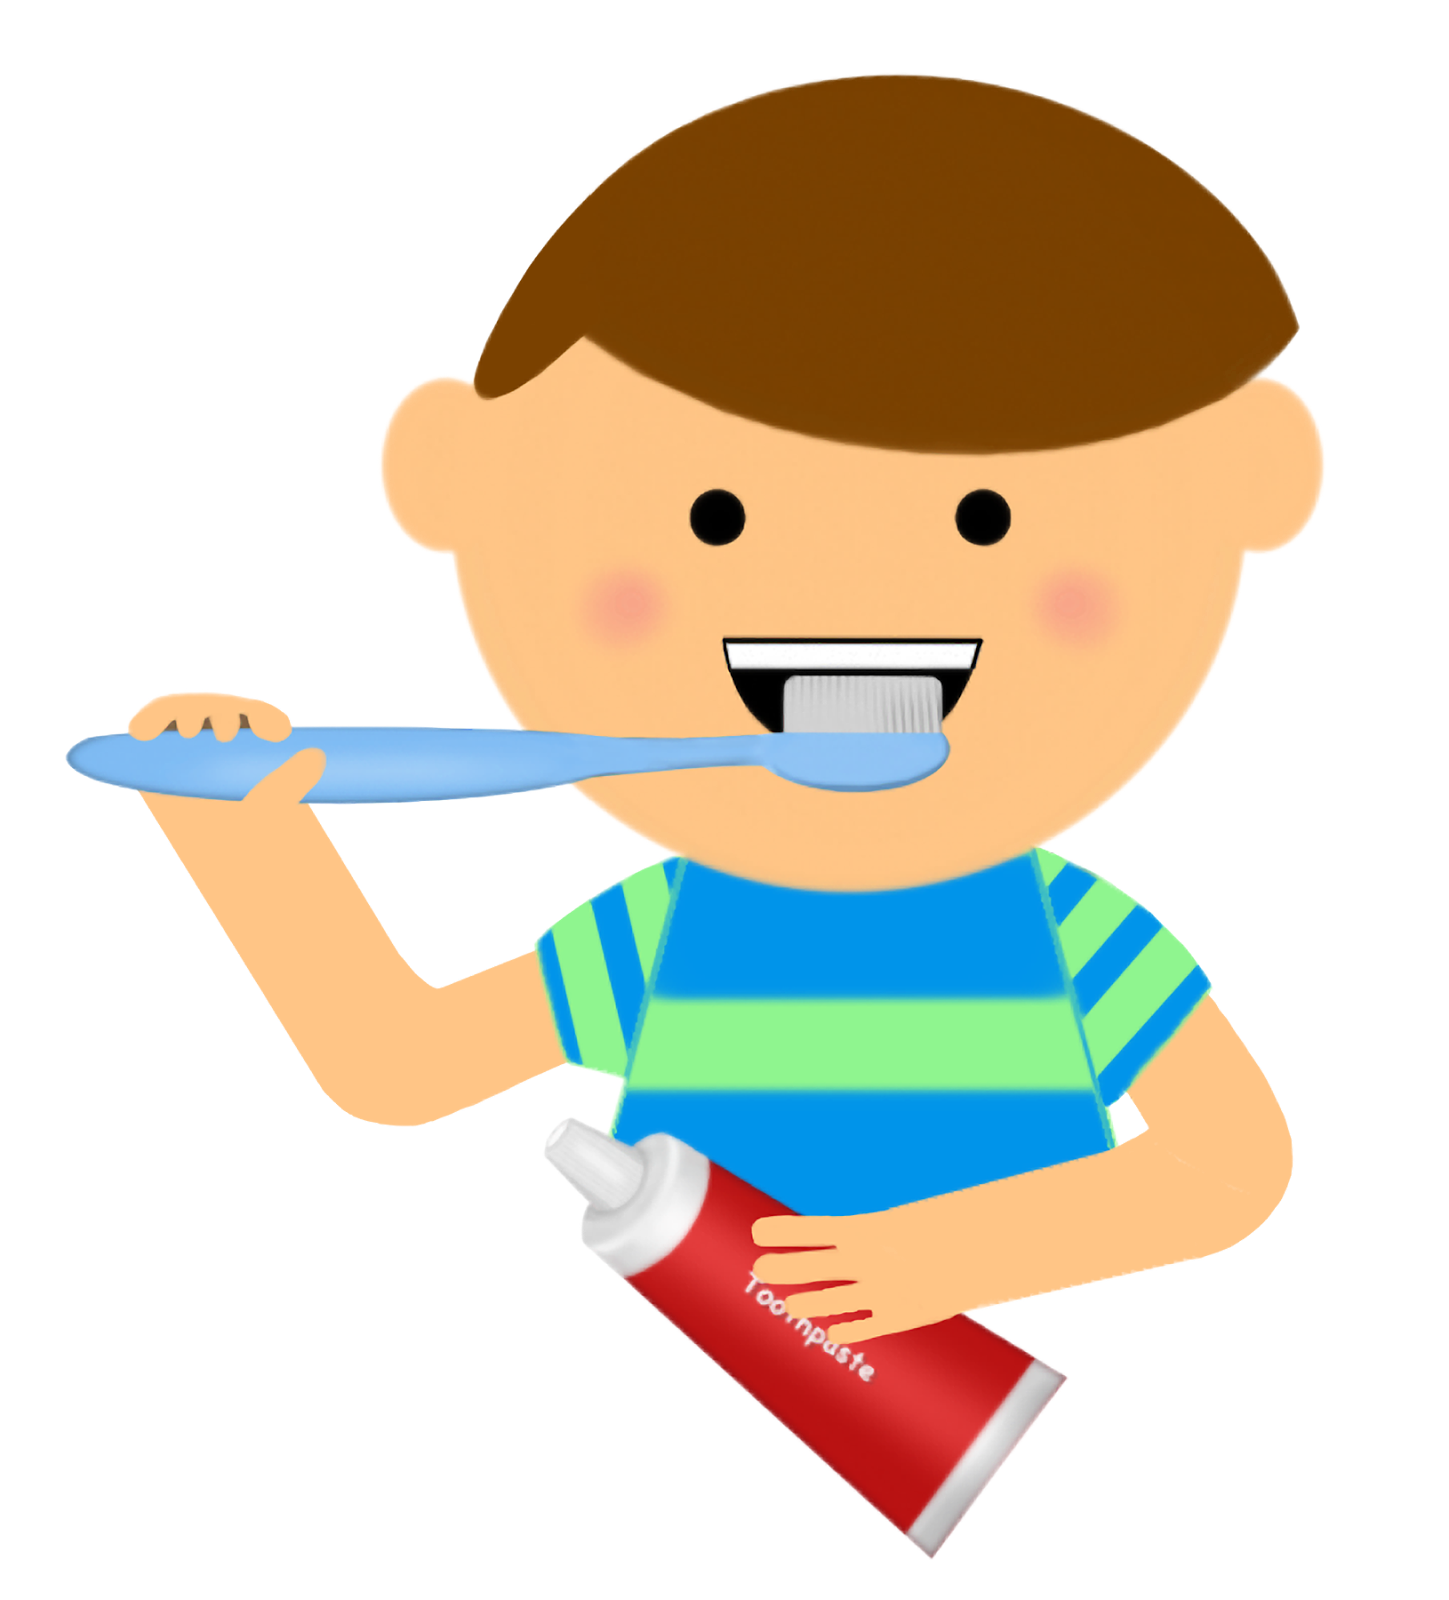 brushing teeth pictures cliparts co dentist theme pinterest rh pinterest com brush teeth clipart brush teeth clipart boy